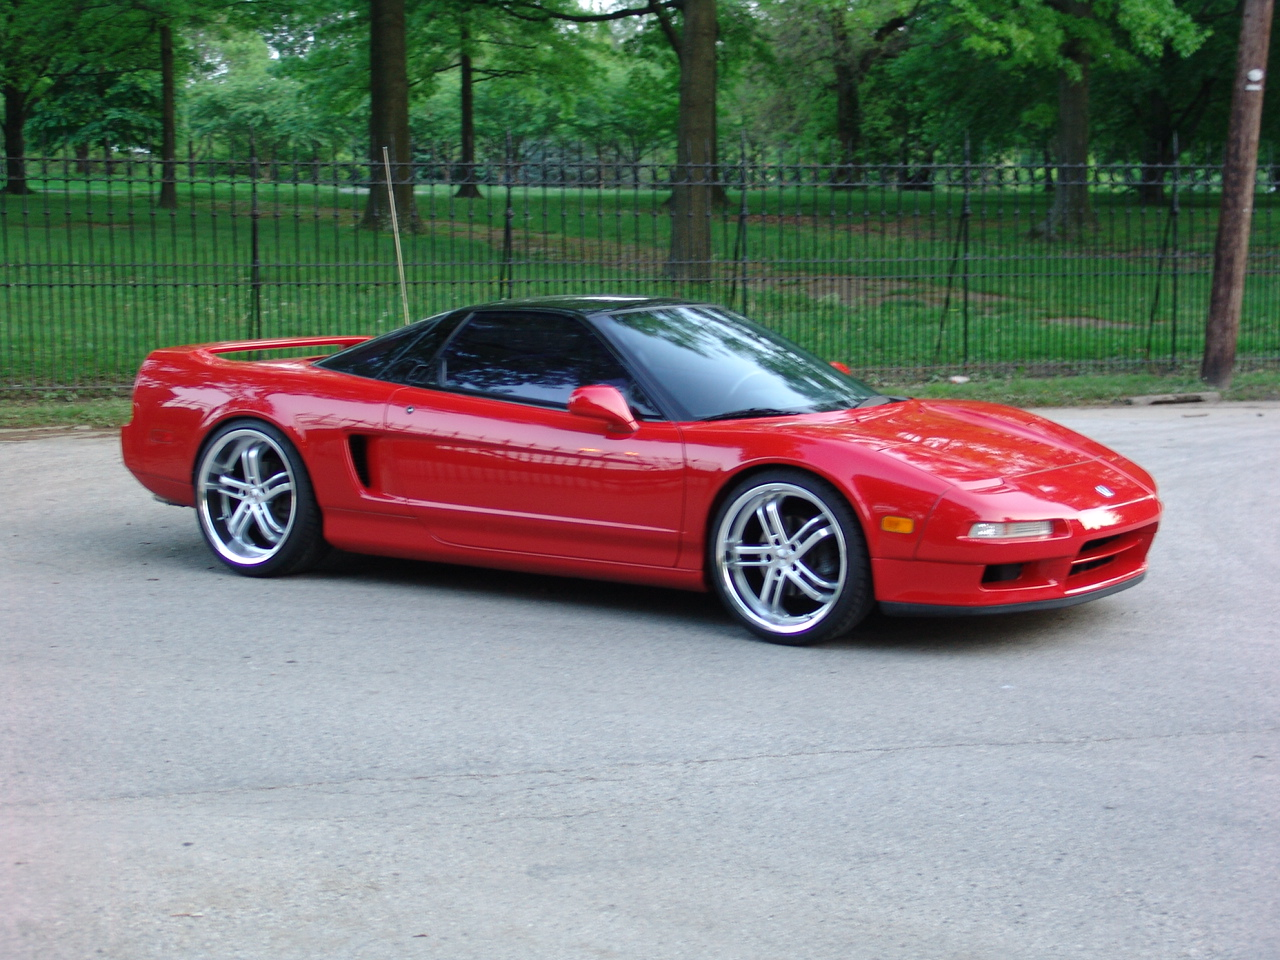 Used Acura Nsx For Sale >> TSW 19/20 Wheels, rear 20x10 front 19x8 - Falken ZR- NEW CONDITION